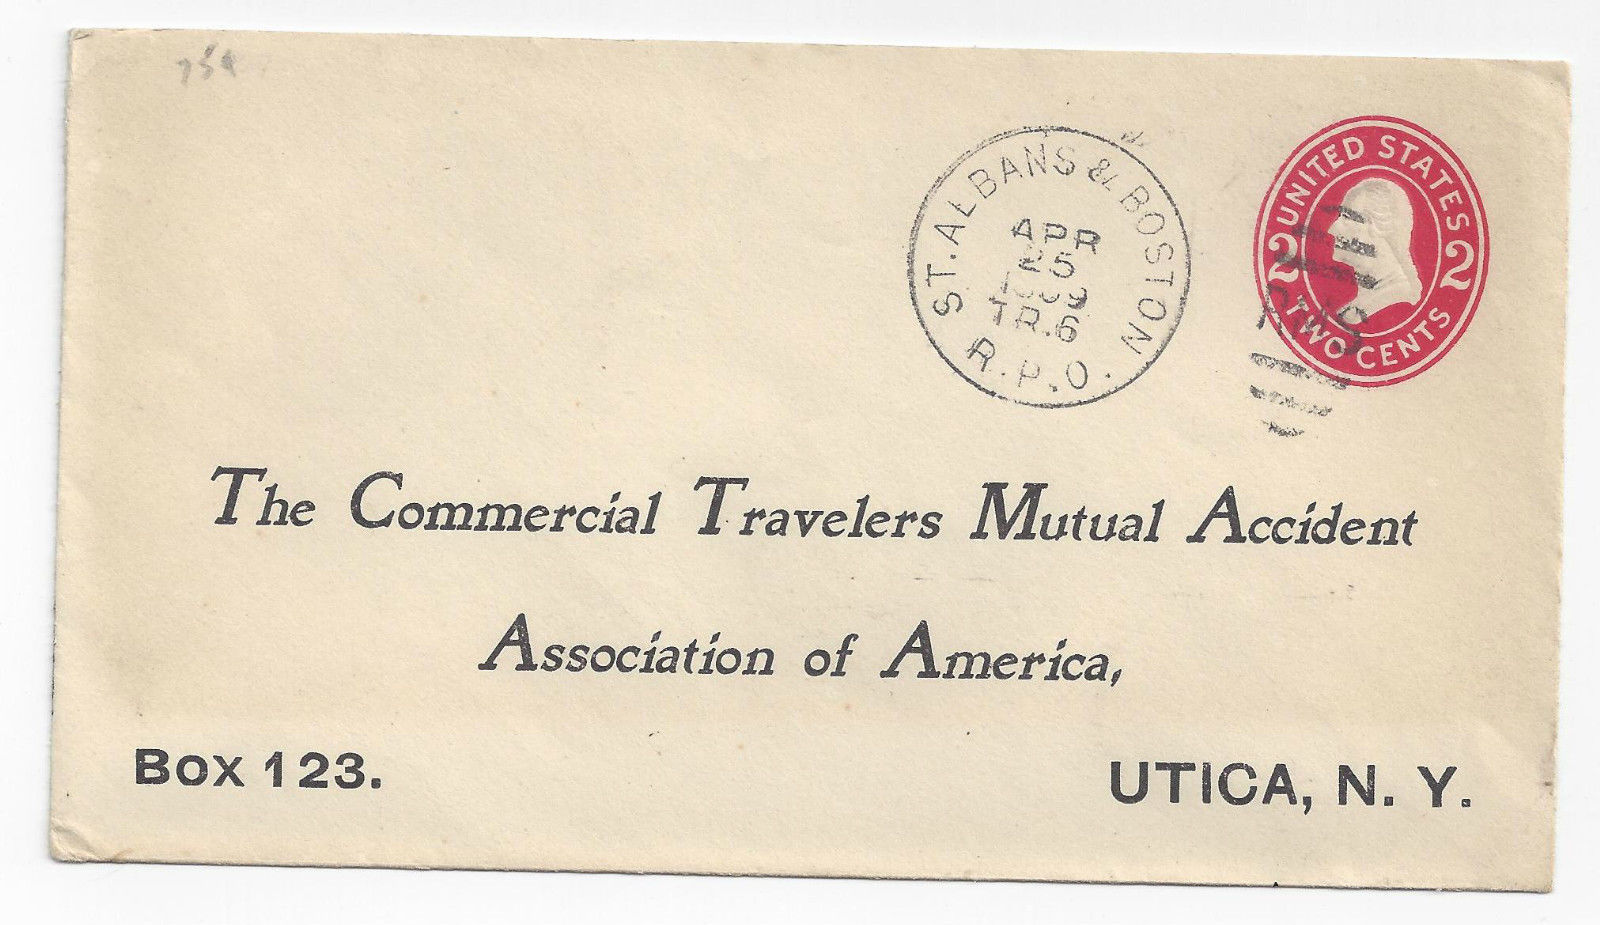 99 br 198 us 1909 rpo st. albans   boston rms train 6 commercial cover stamped envelope